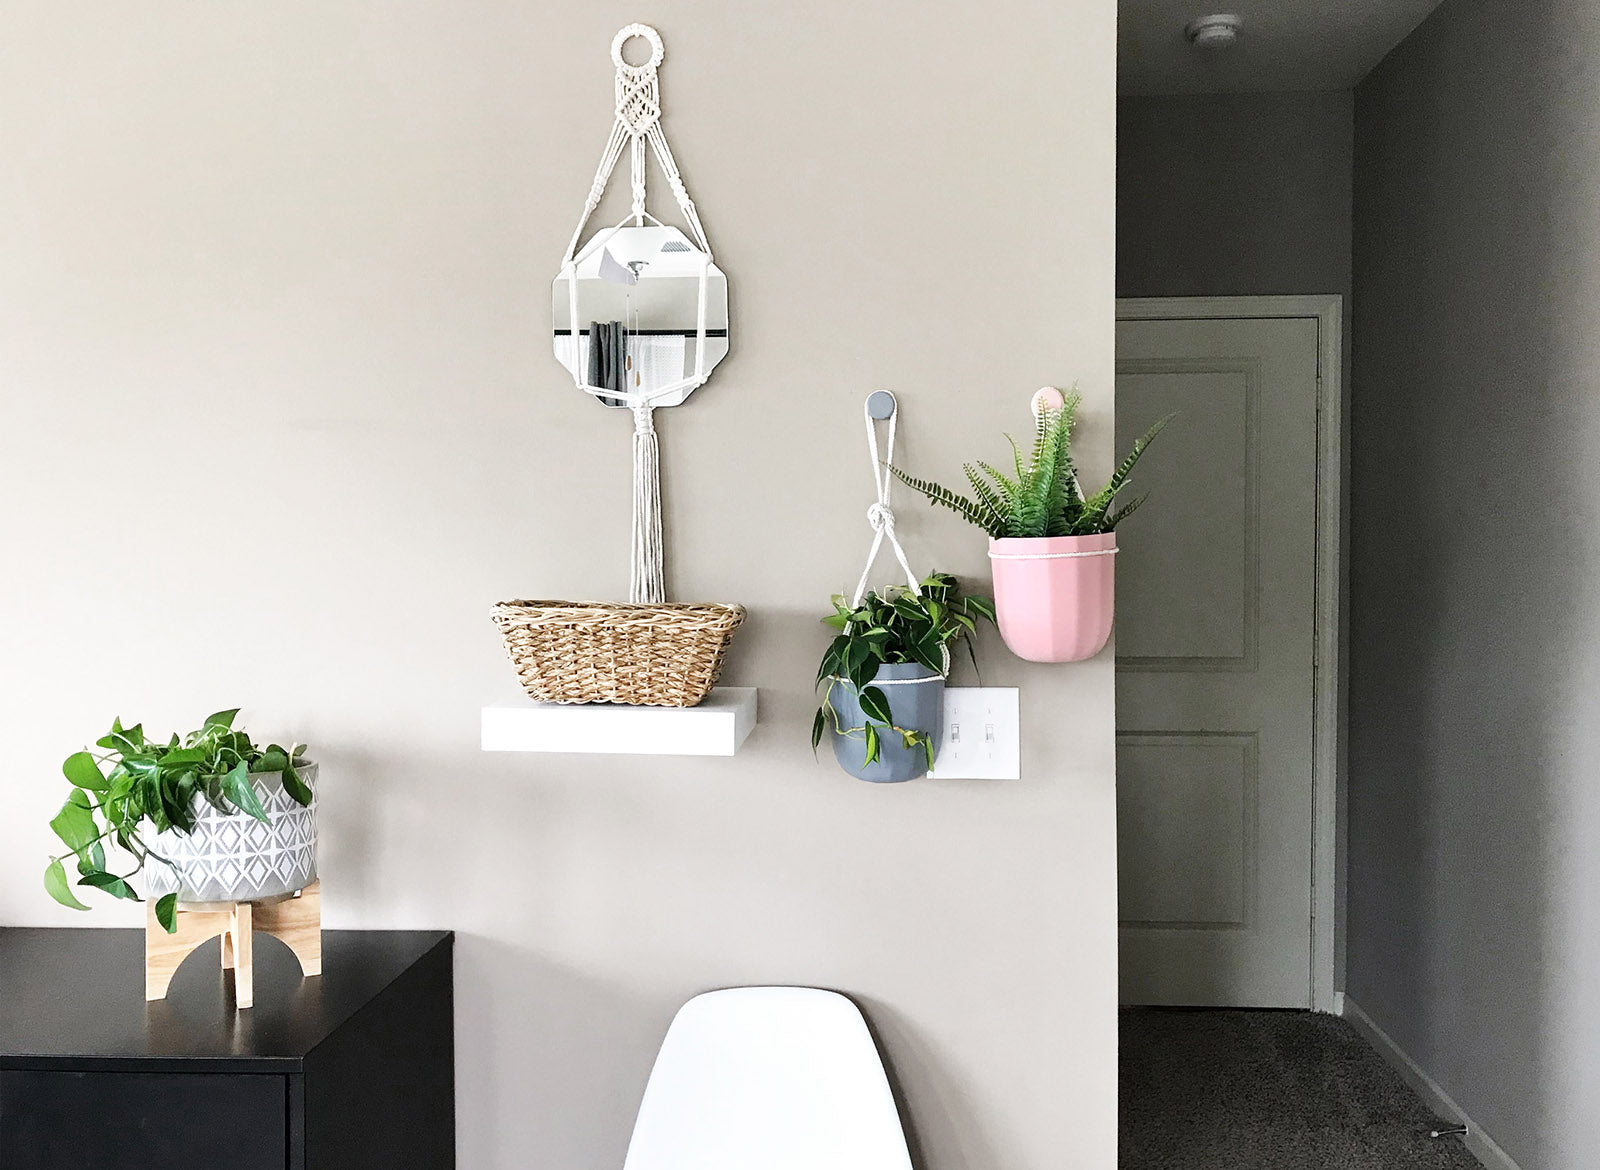 How to Quickly Transform an Awkward Wall with Plants